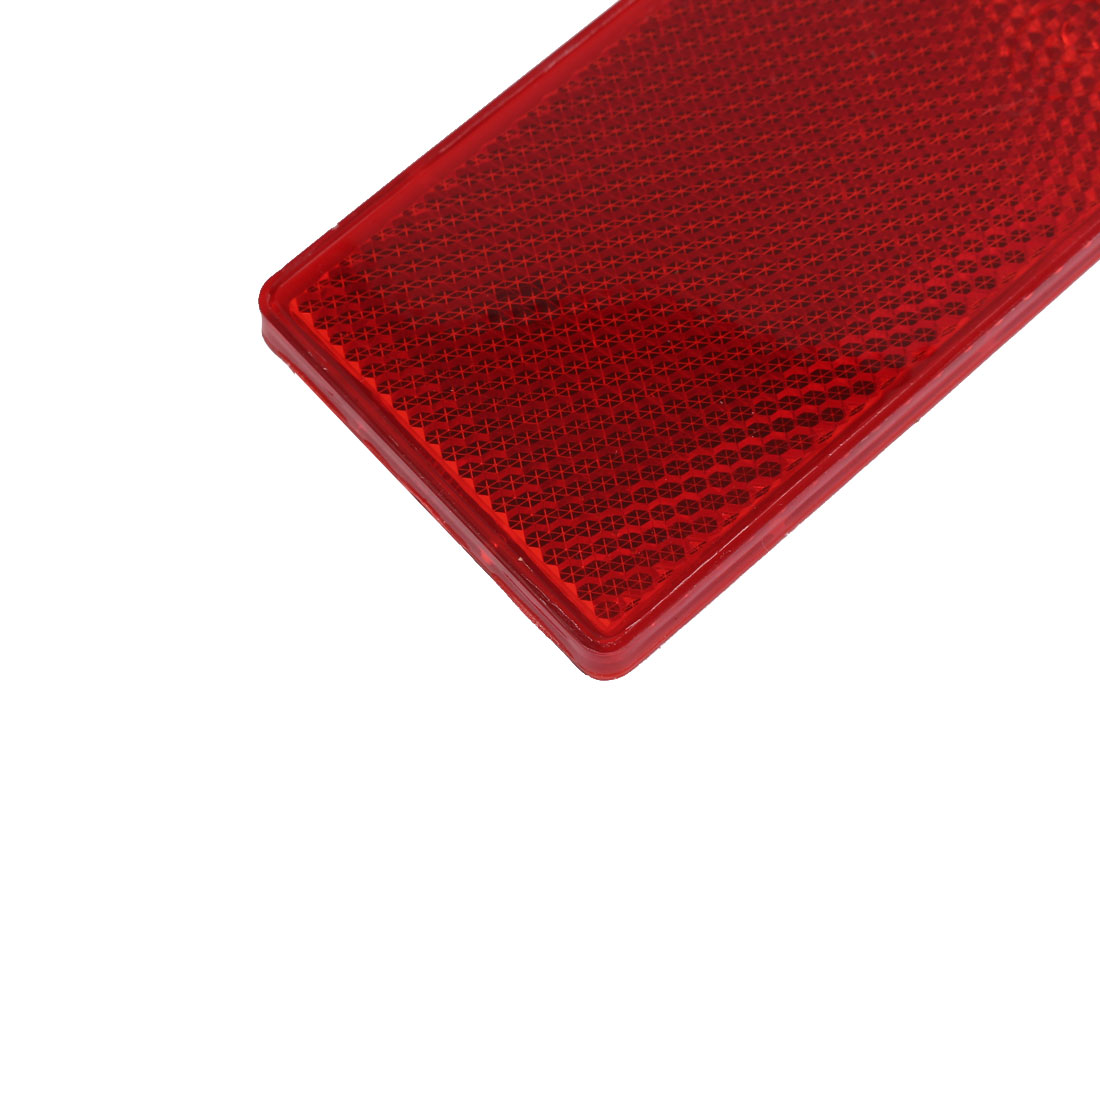 Vehicle Truck Car Plastic Stick-On Reflective Rectangle Reflector Red 4 Pcs - image 1 of 4